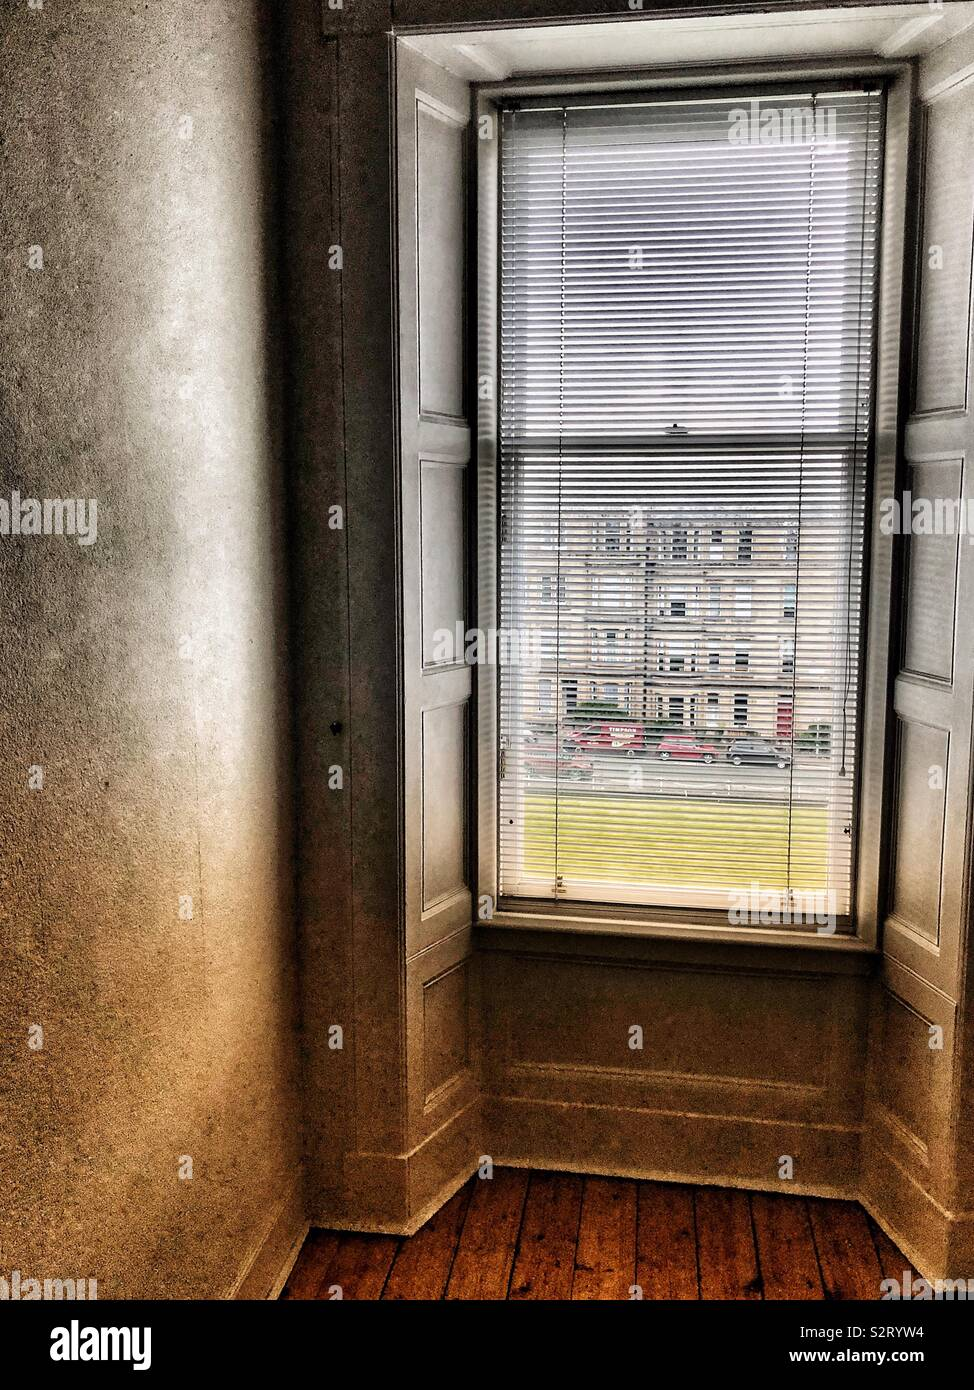 Looking through Venetian blind from empty room - Stock Image